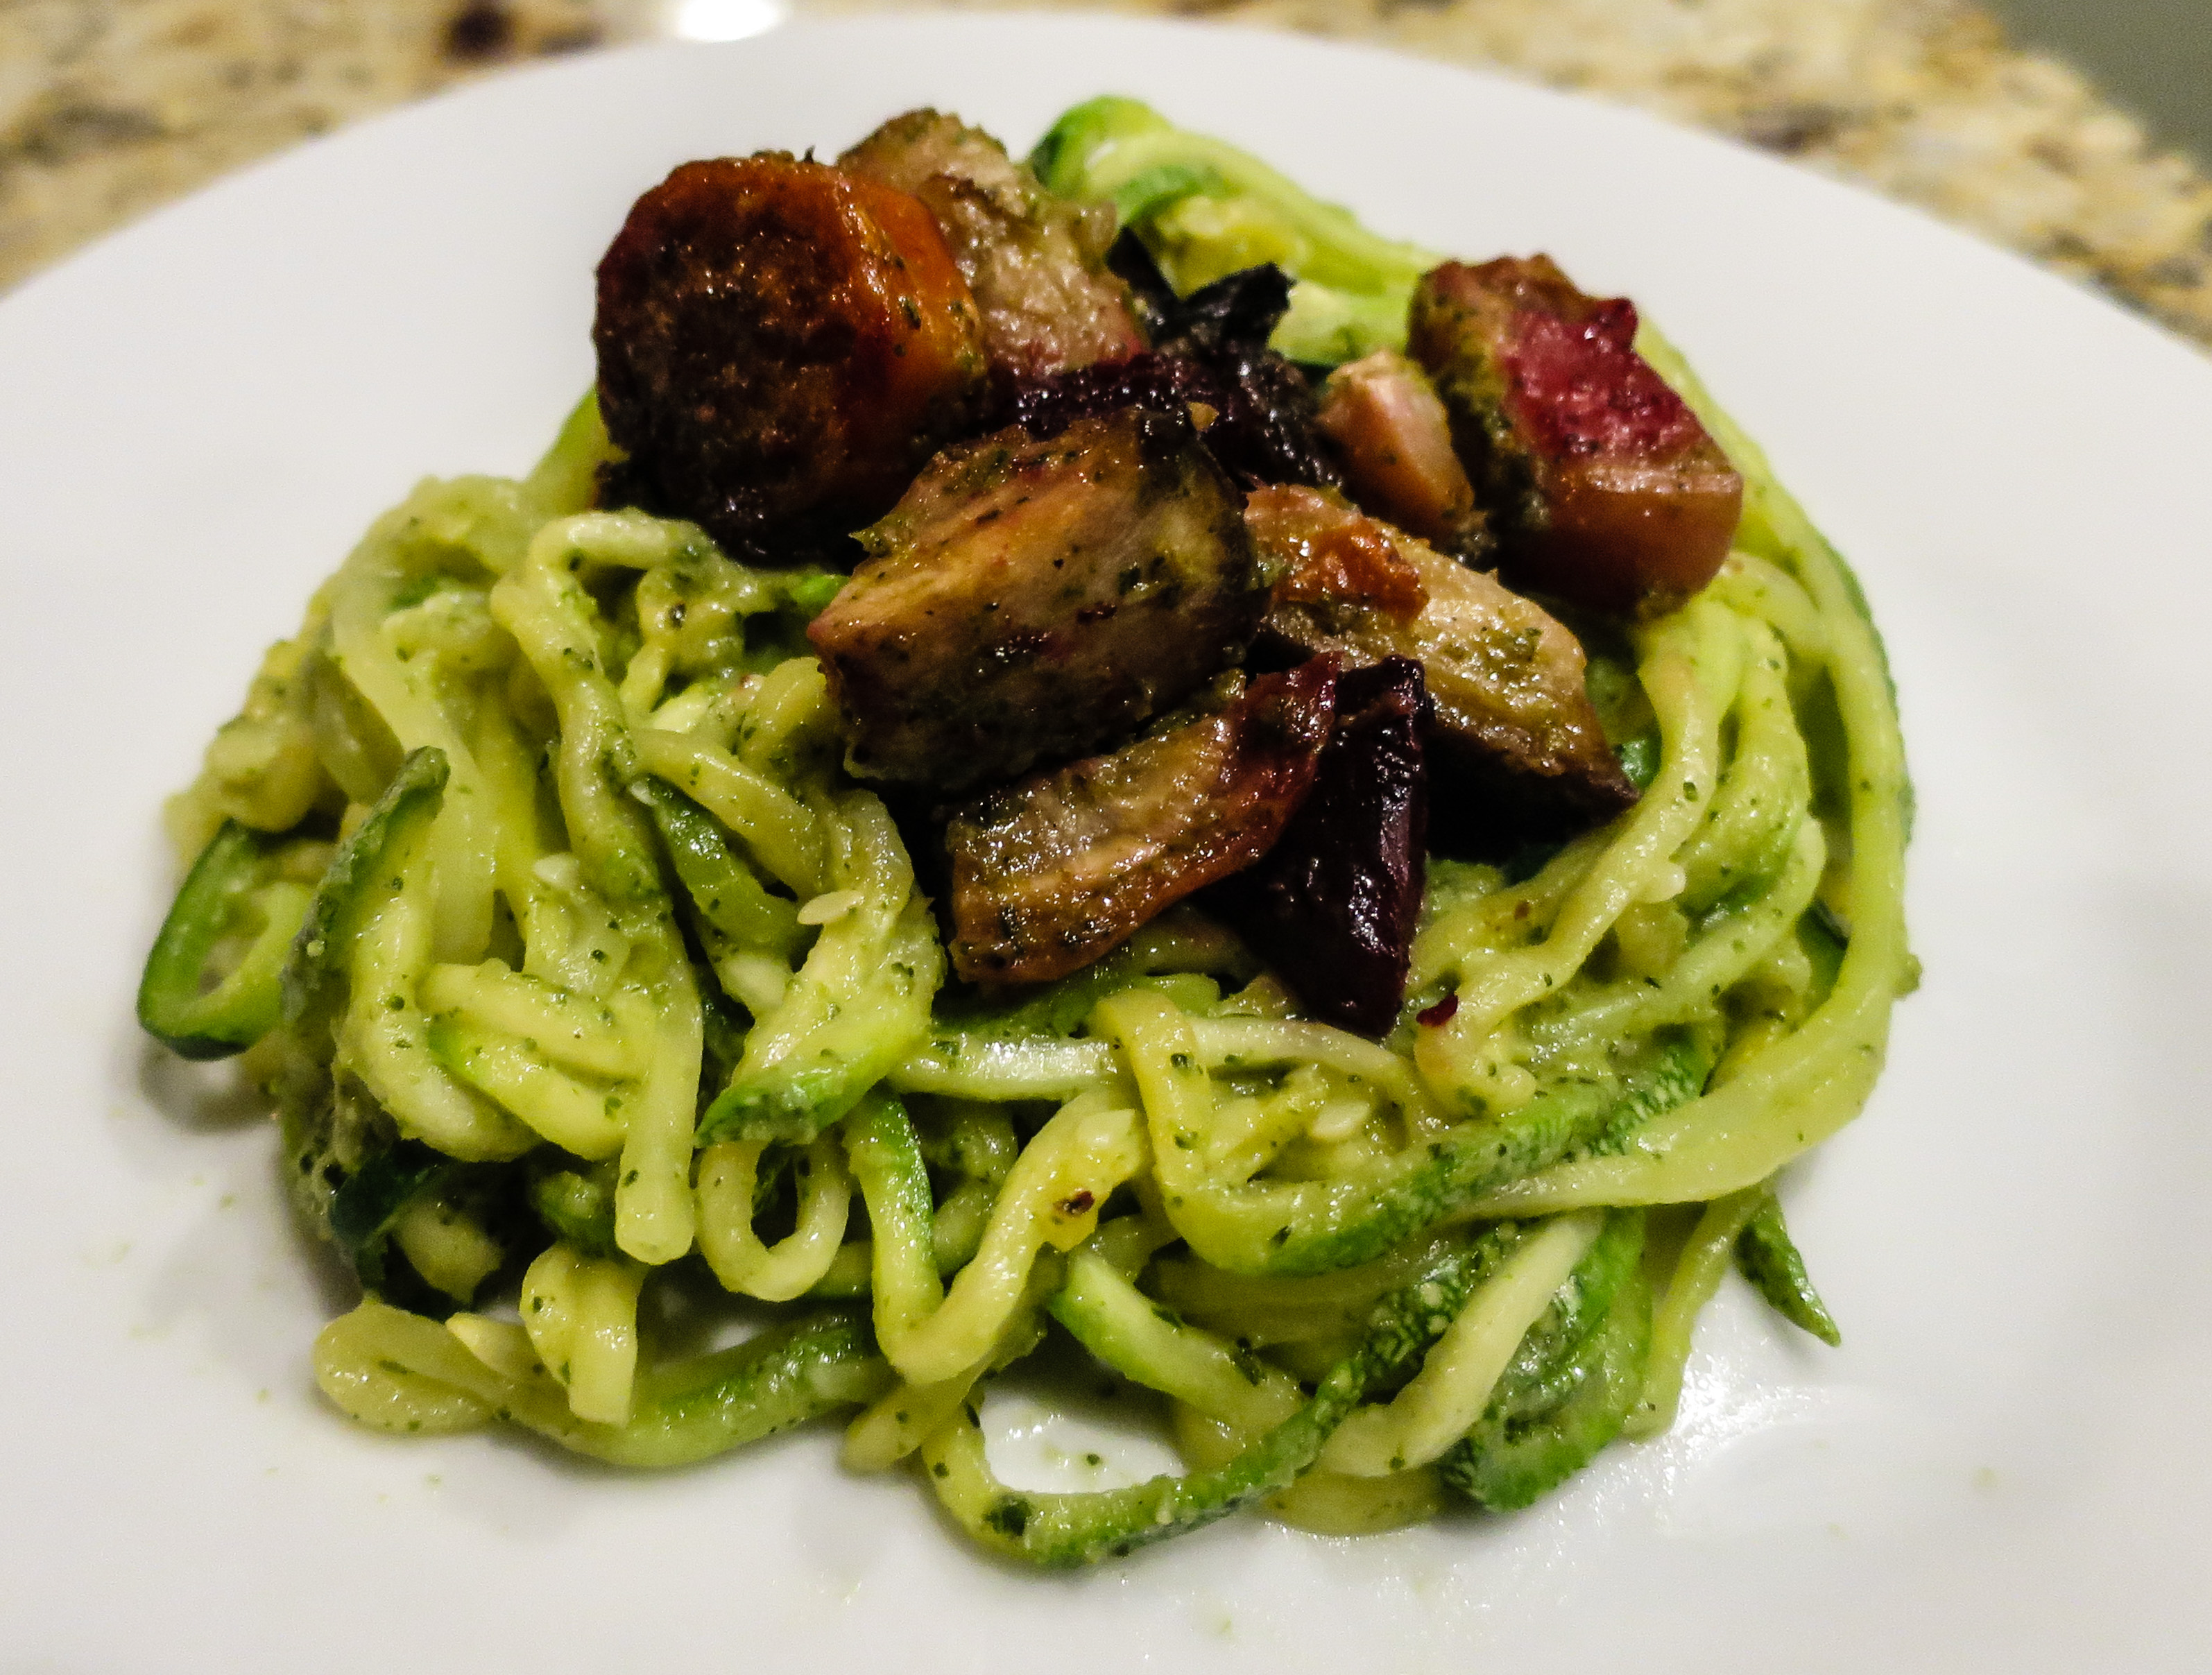 Broccoli Pesto Sauce